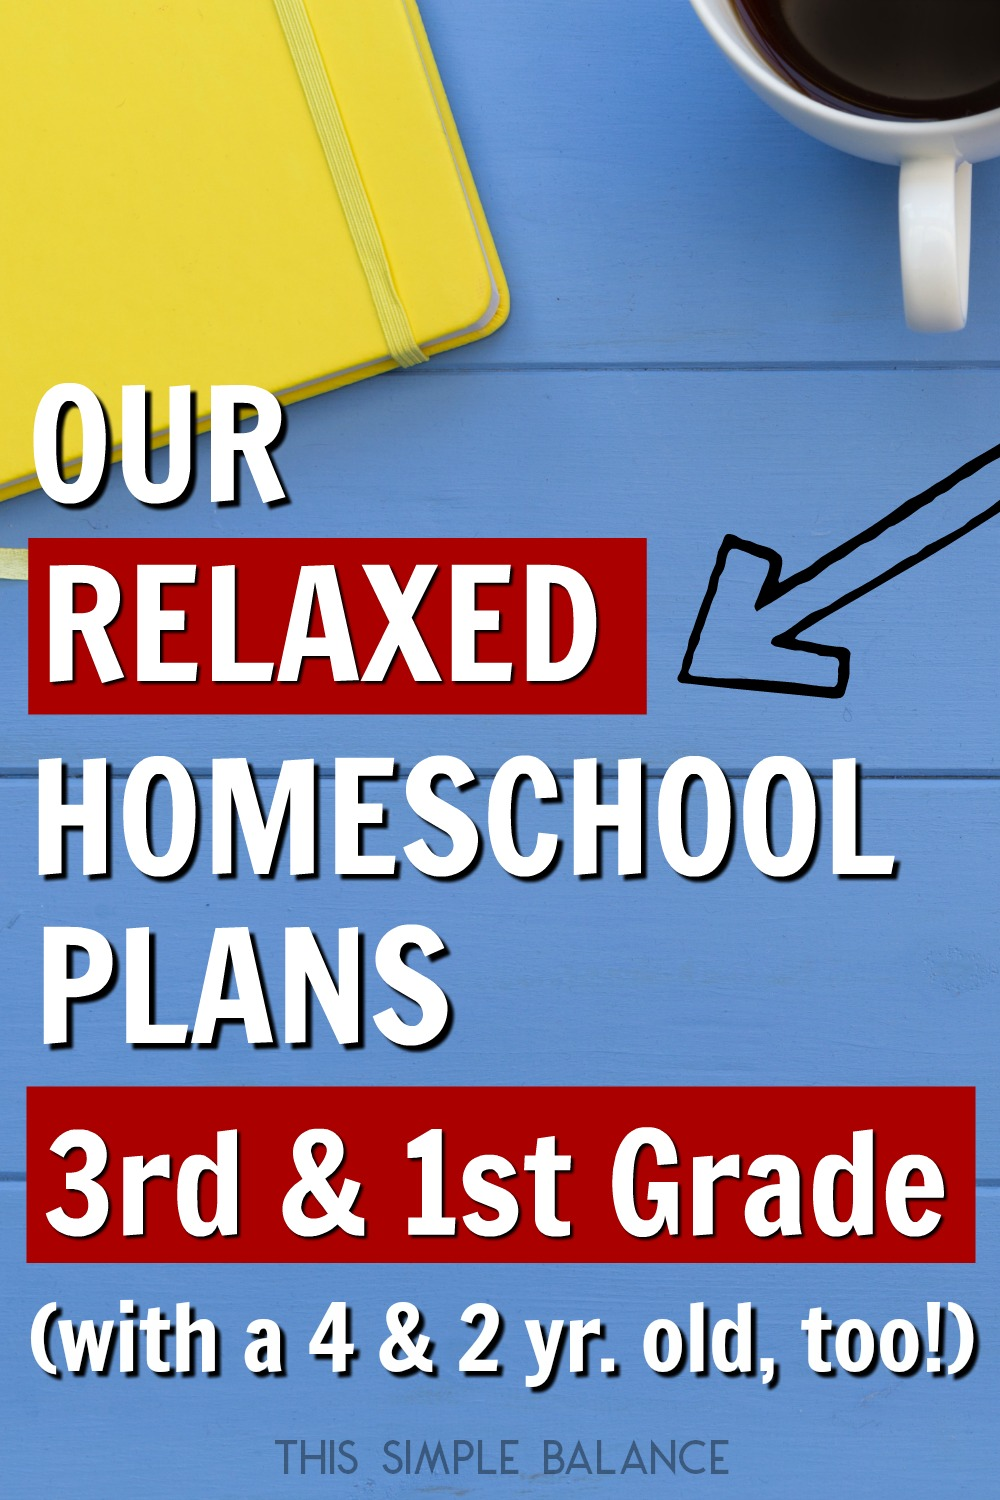 Are you going to homeschool 3rd grade or 1st grade this year? Get relaxed homeschooling ideas from the curriculum and resources we are using this year!